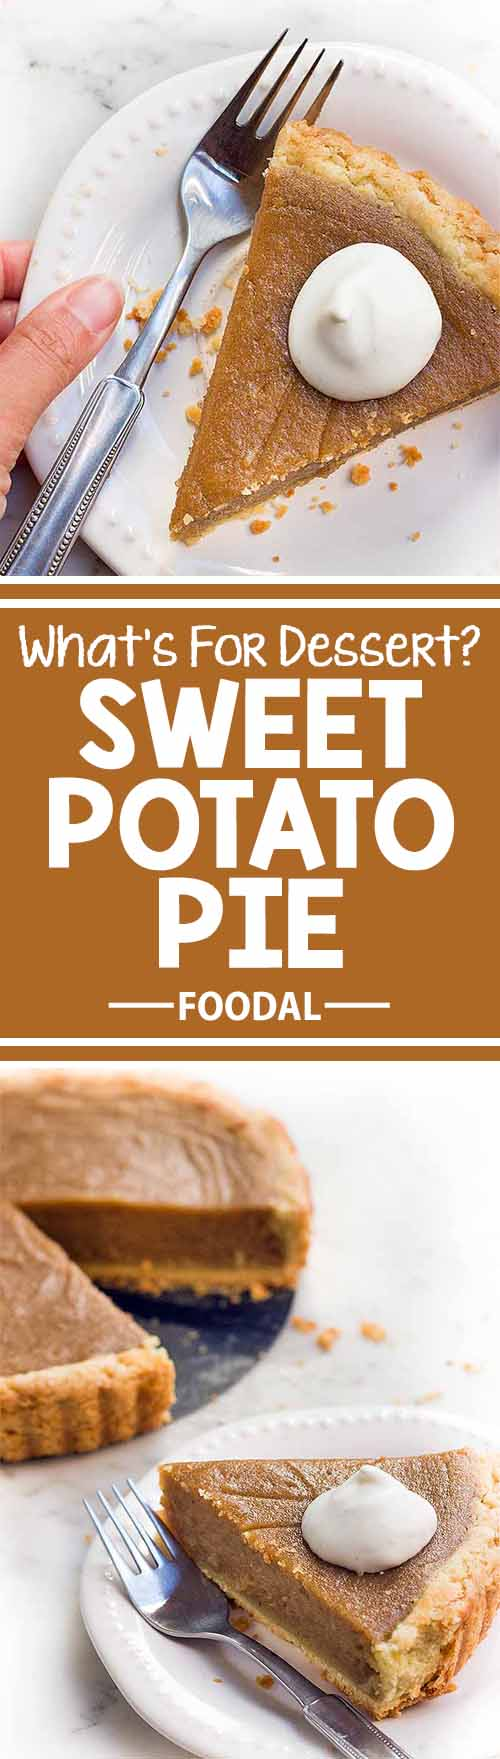 If you love pie and you're a fan of sweet potatoes, then you're definitely going to love this sweet potato pie, a decadent and rich dessert that is perfect for serving your guests this holiday season – or at any time of year! Get the recipe now on Foodal: https://foodal.com/recipes/desserts/sweet-potato-pie/